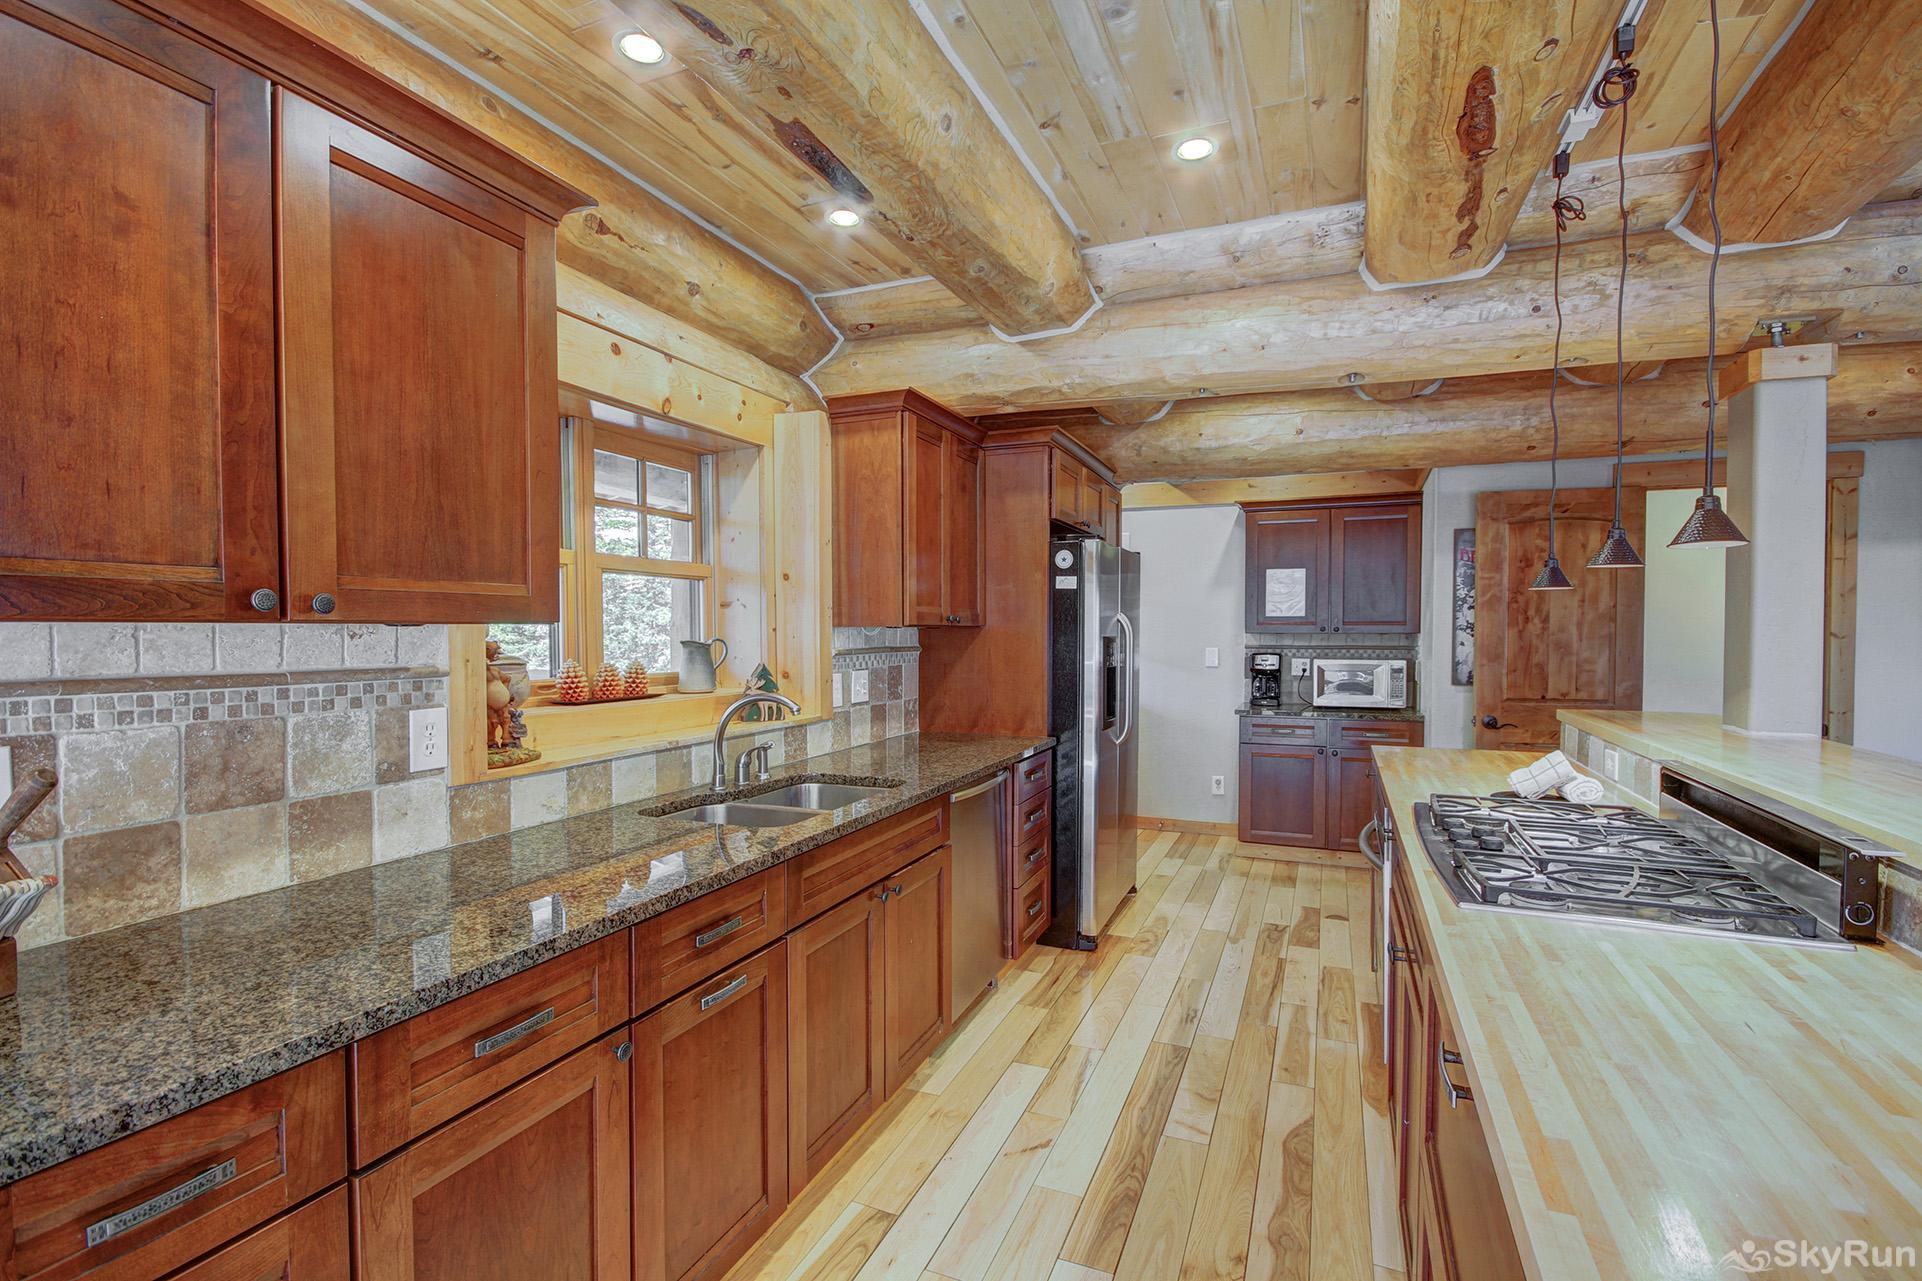 Timber Ridge Lodge Spacious kitchen with stainless appliances, gas cooktop